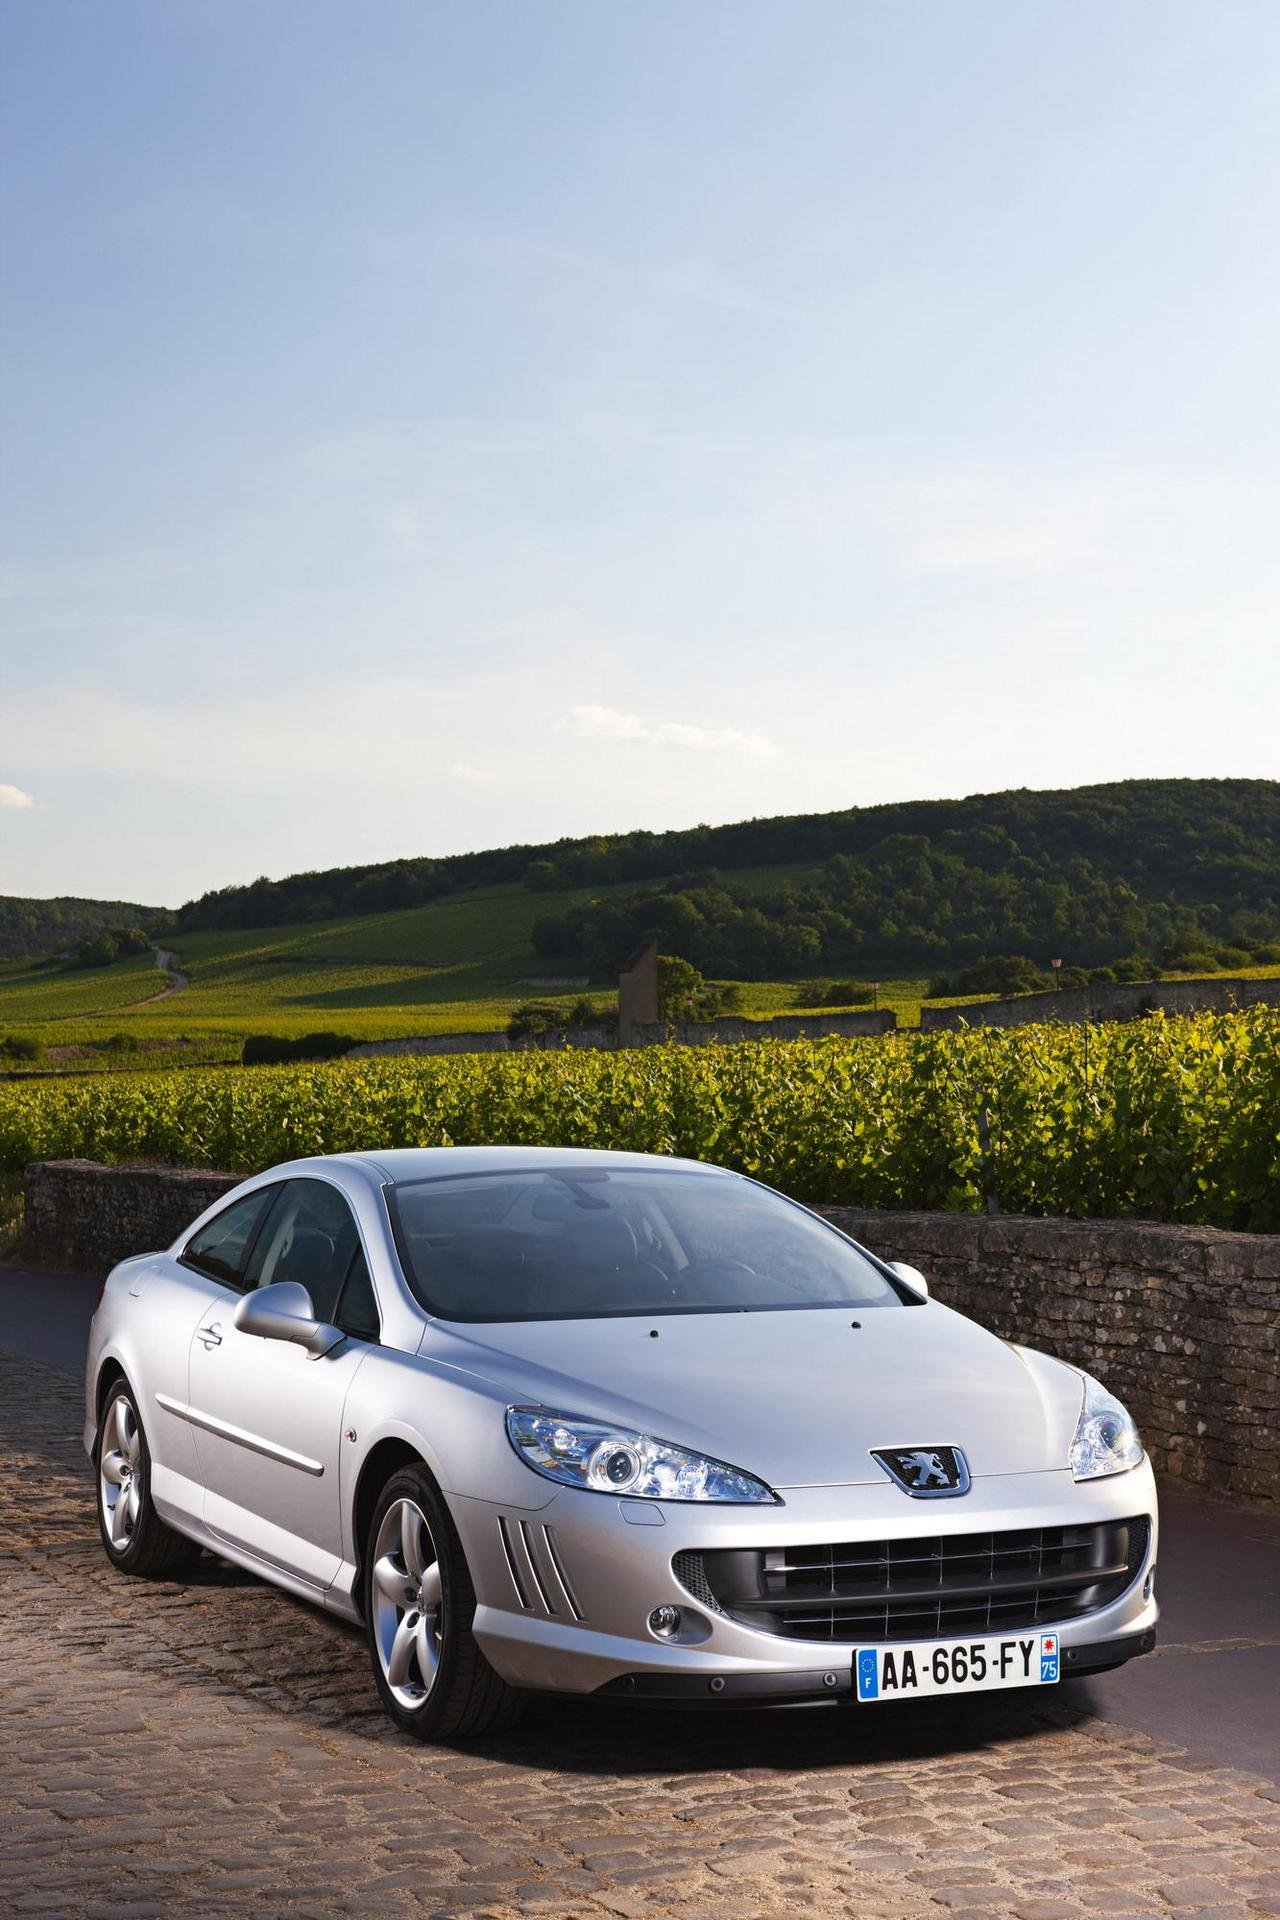 2009 peugeot 407 coupe picture 310114 car review top speed. Black Bedroom Furniture Sets. Home Design Ideas